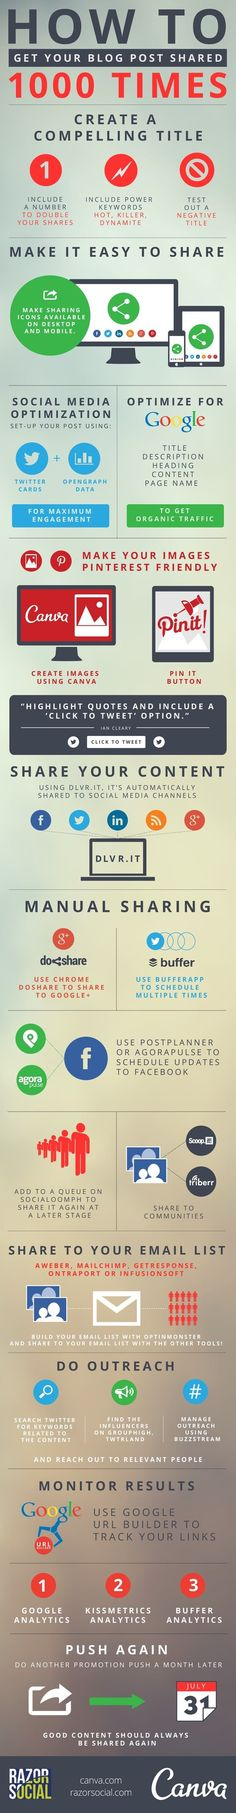 How to Promote Your Blog Content to Get 1,000 Social Media Shares   Infographic   visualizing #socialmediatips   Scoop.it